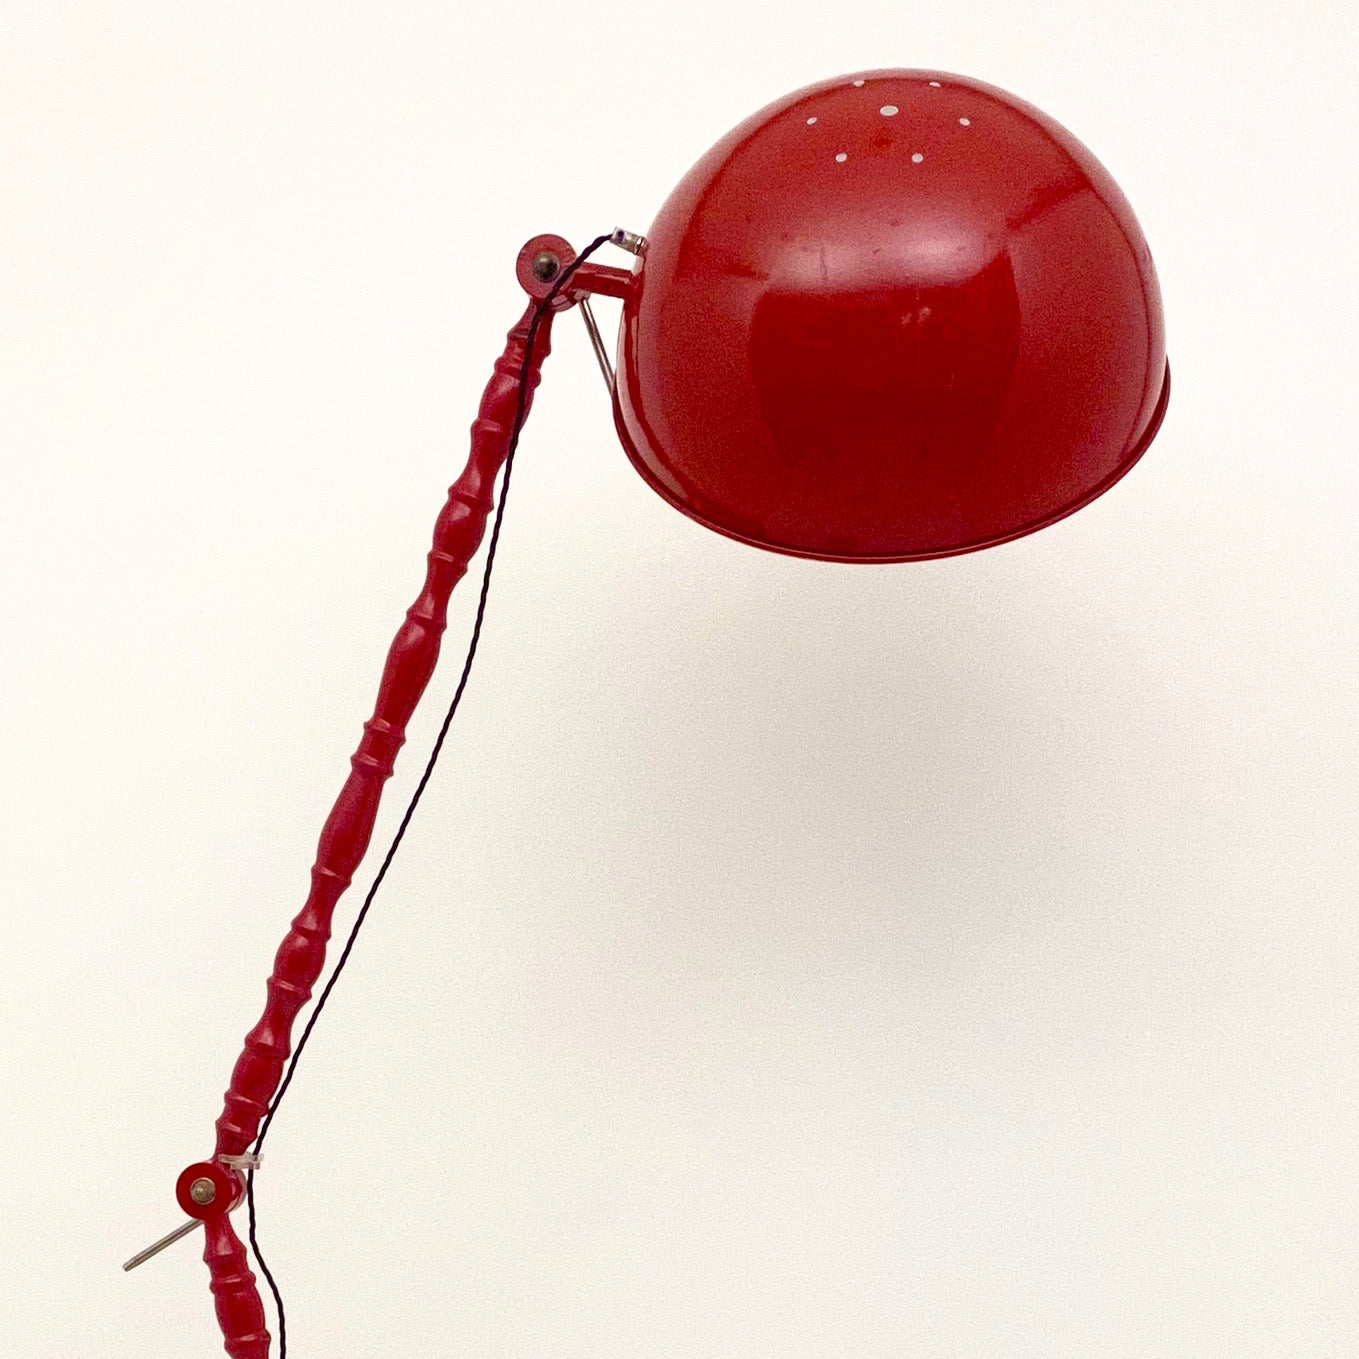 Gigantic vintage red anglepoise style floor lamp .